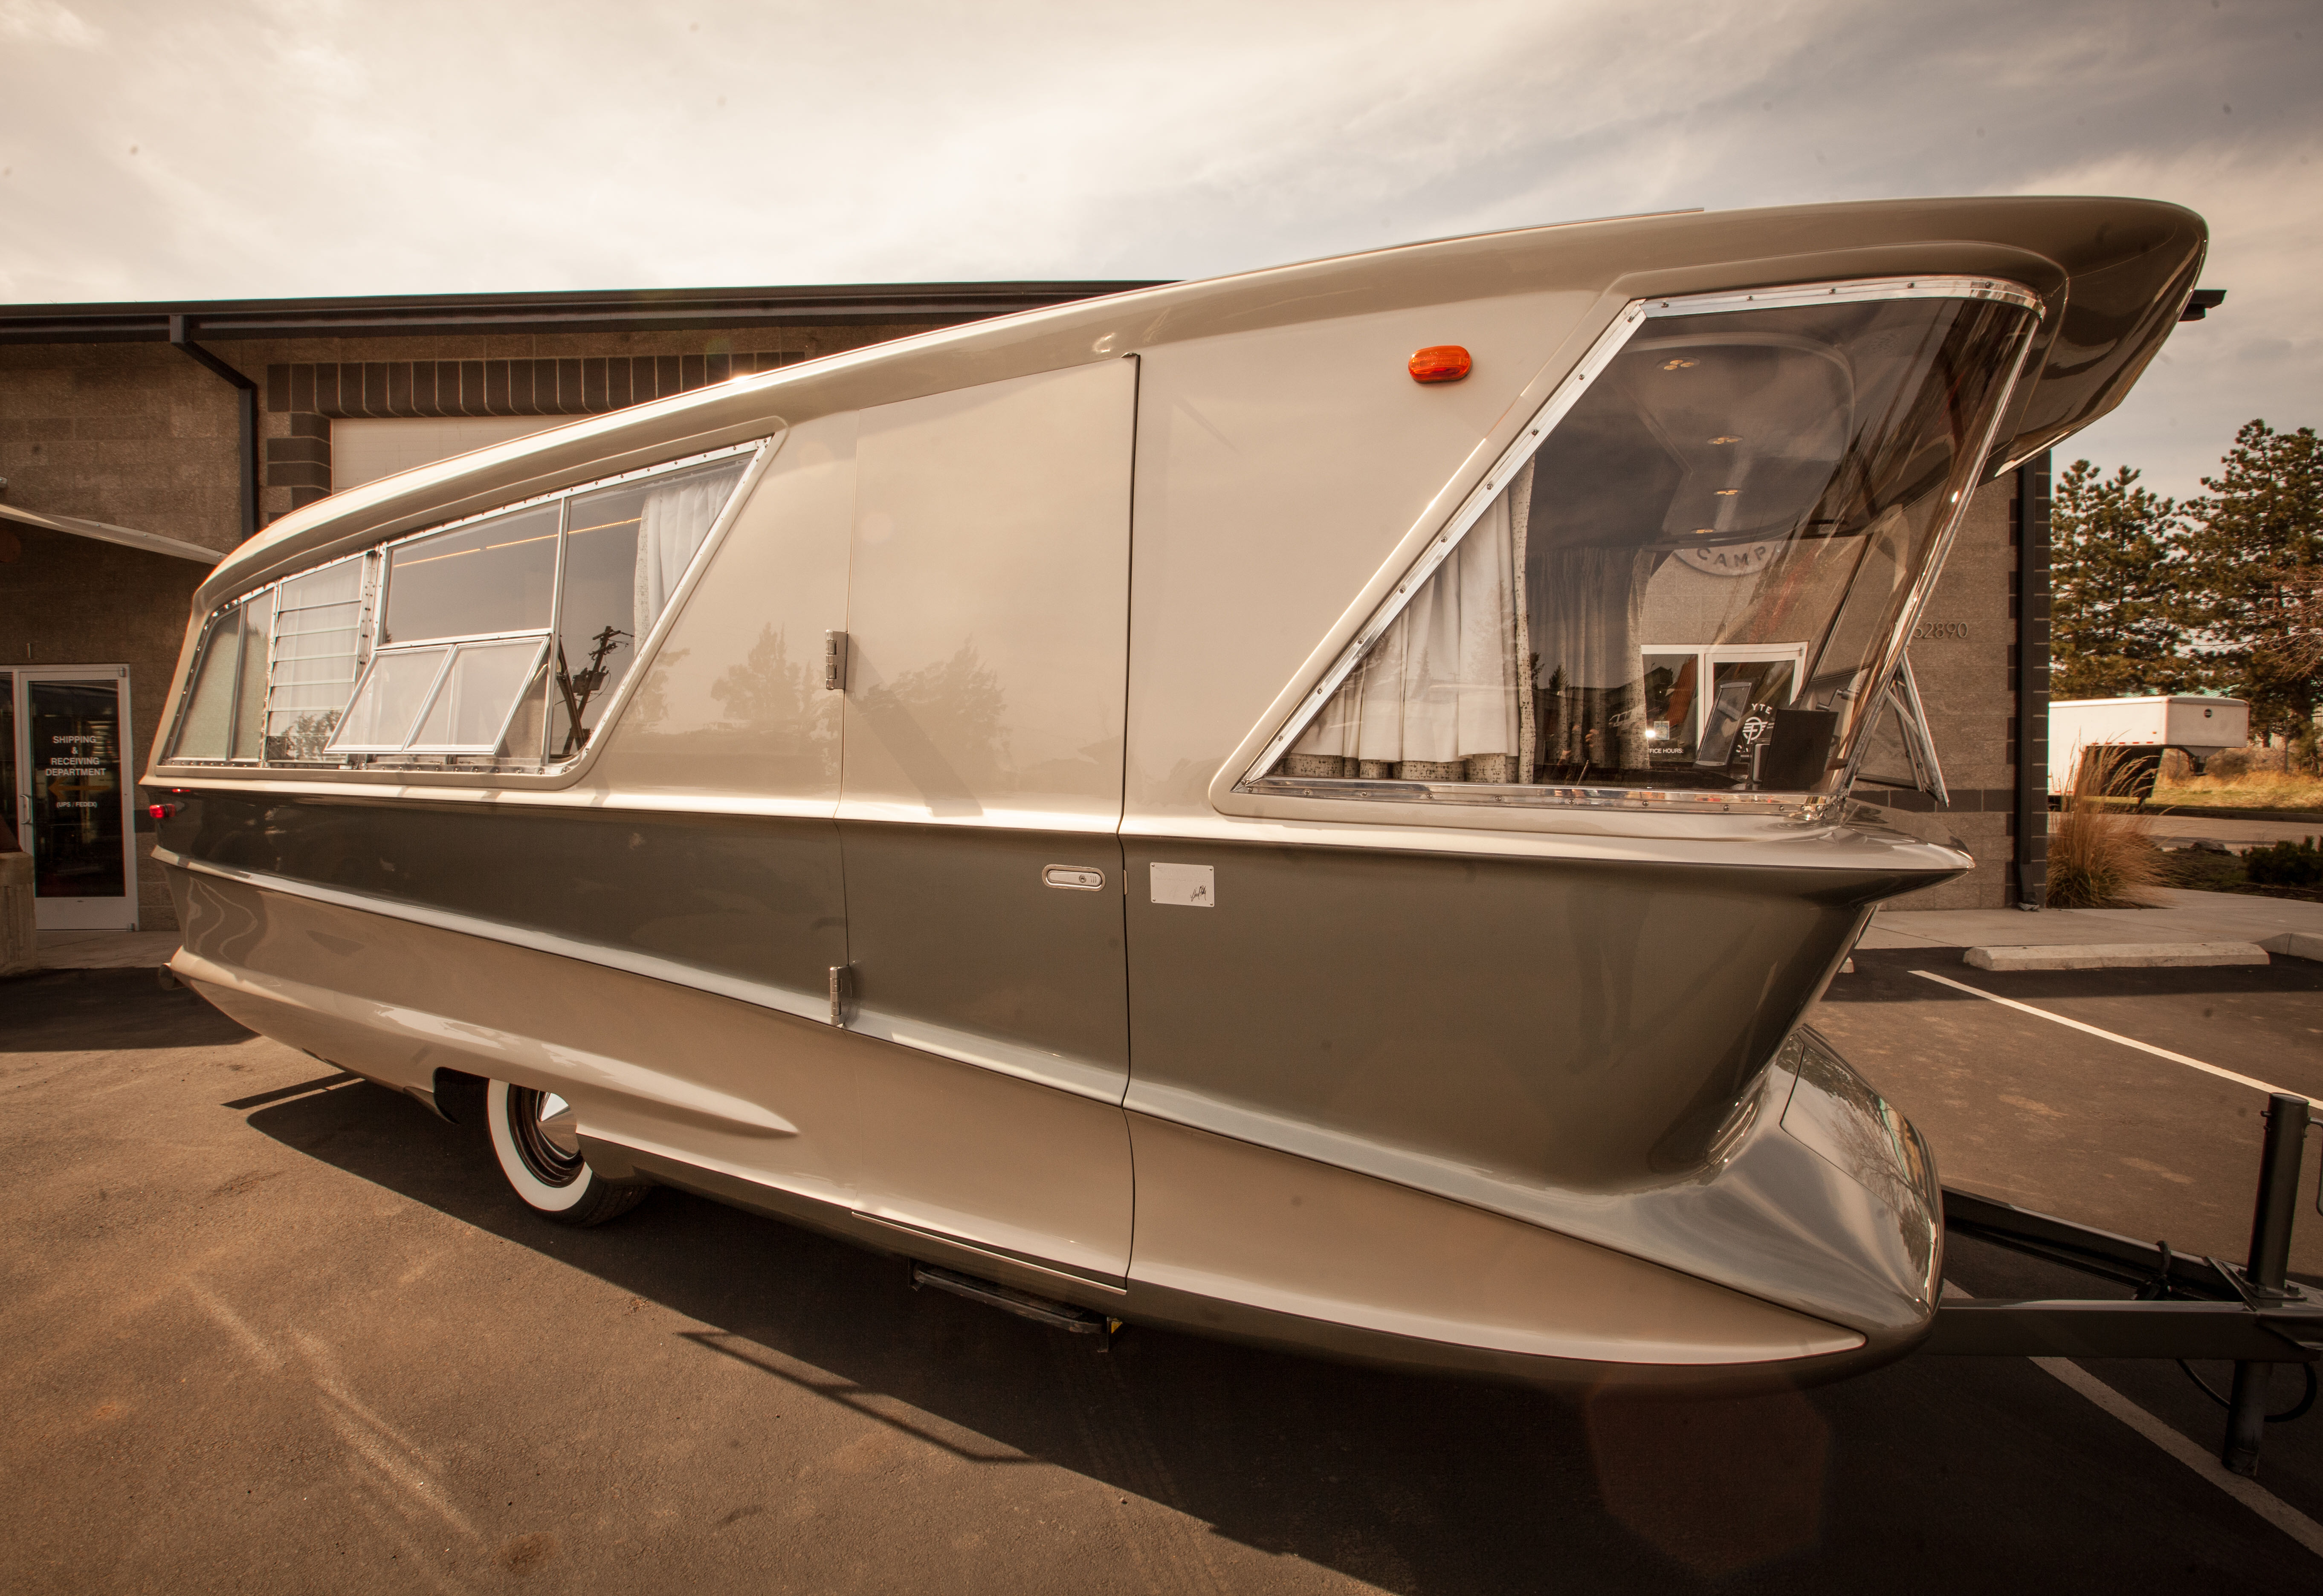 SOLD!! 1961 Holiday House Geographic Model X